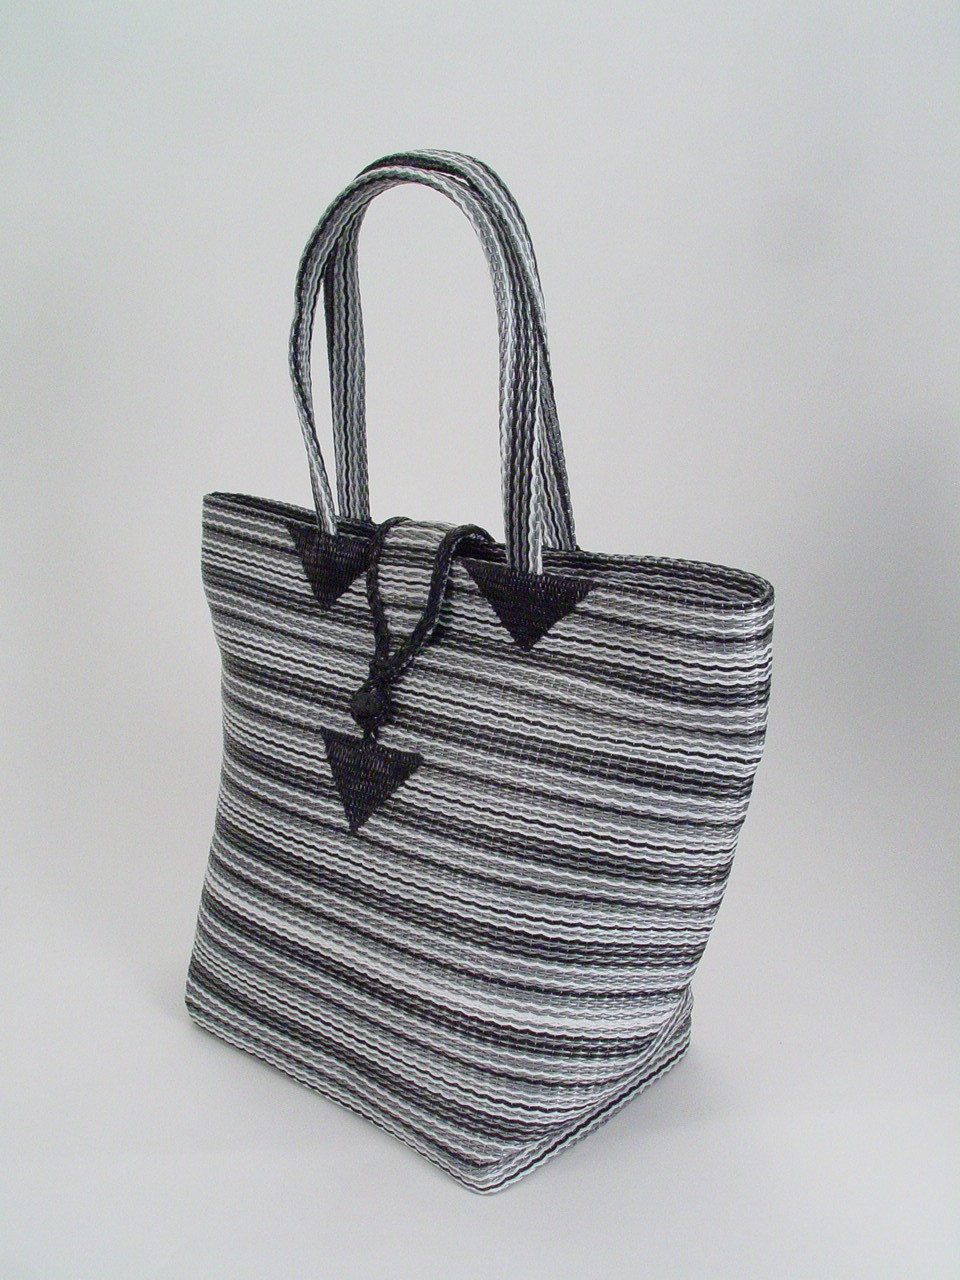 tote bag plastic fabric tote bag cooler tote bag large leather tote bag zippered